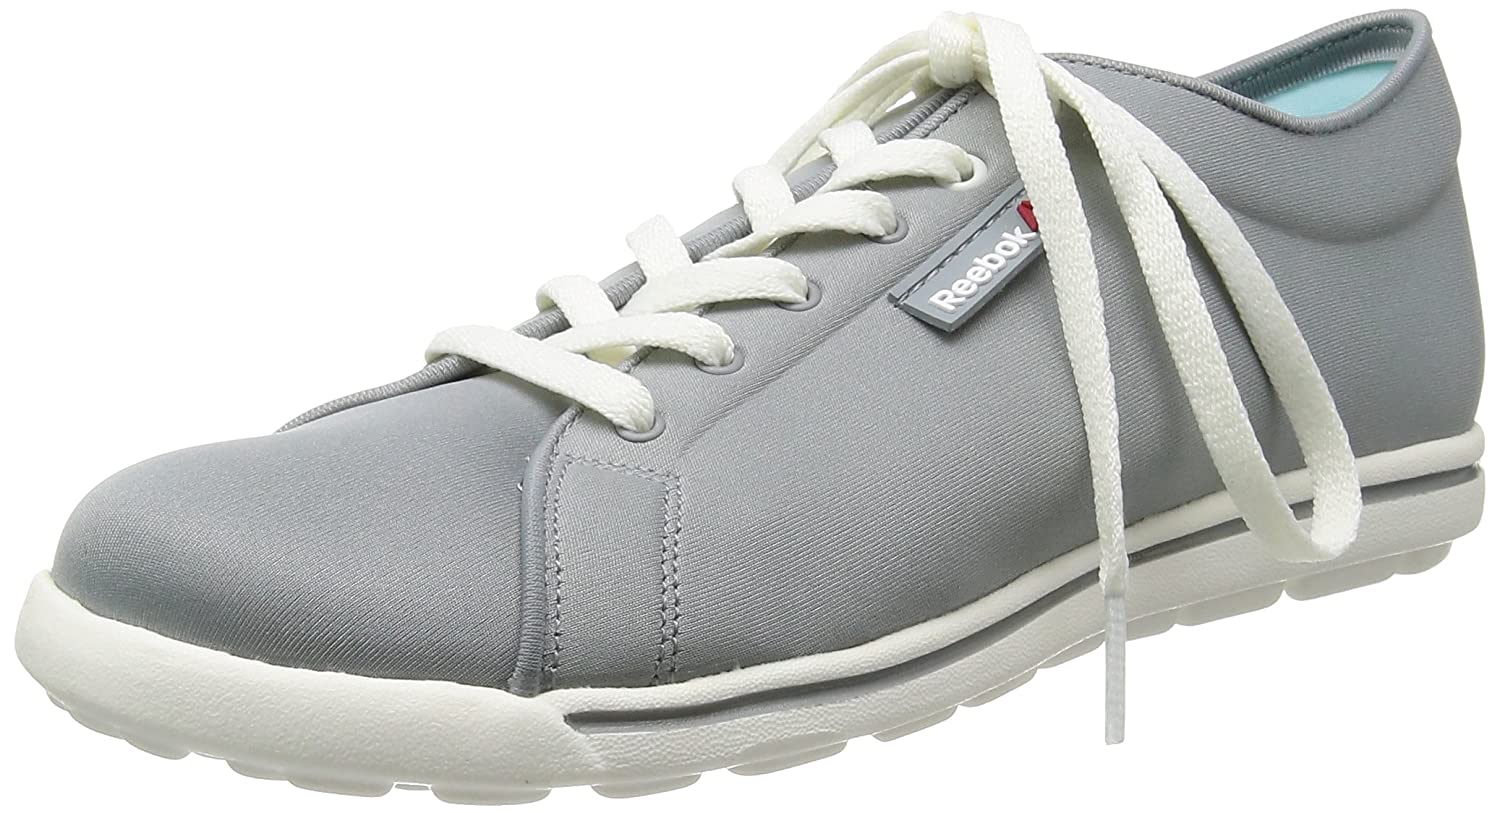 Reebok Skyscape Forever Grey Womens Walking Shoes/Sneakers Size 5 V61607